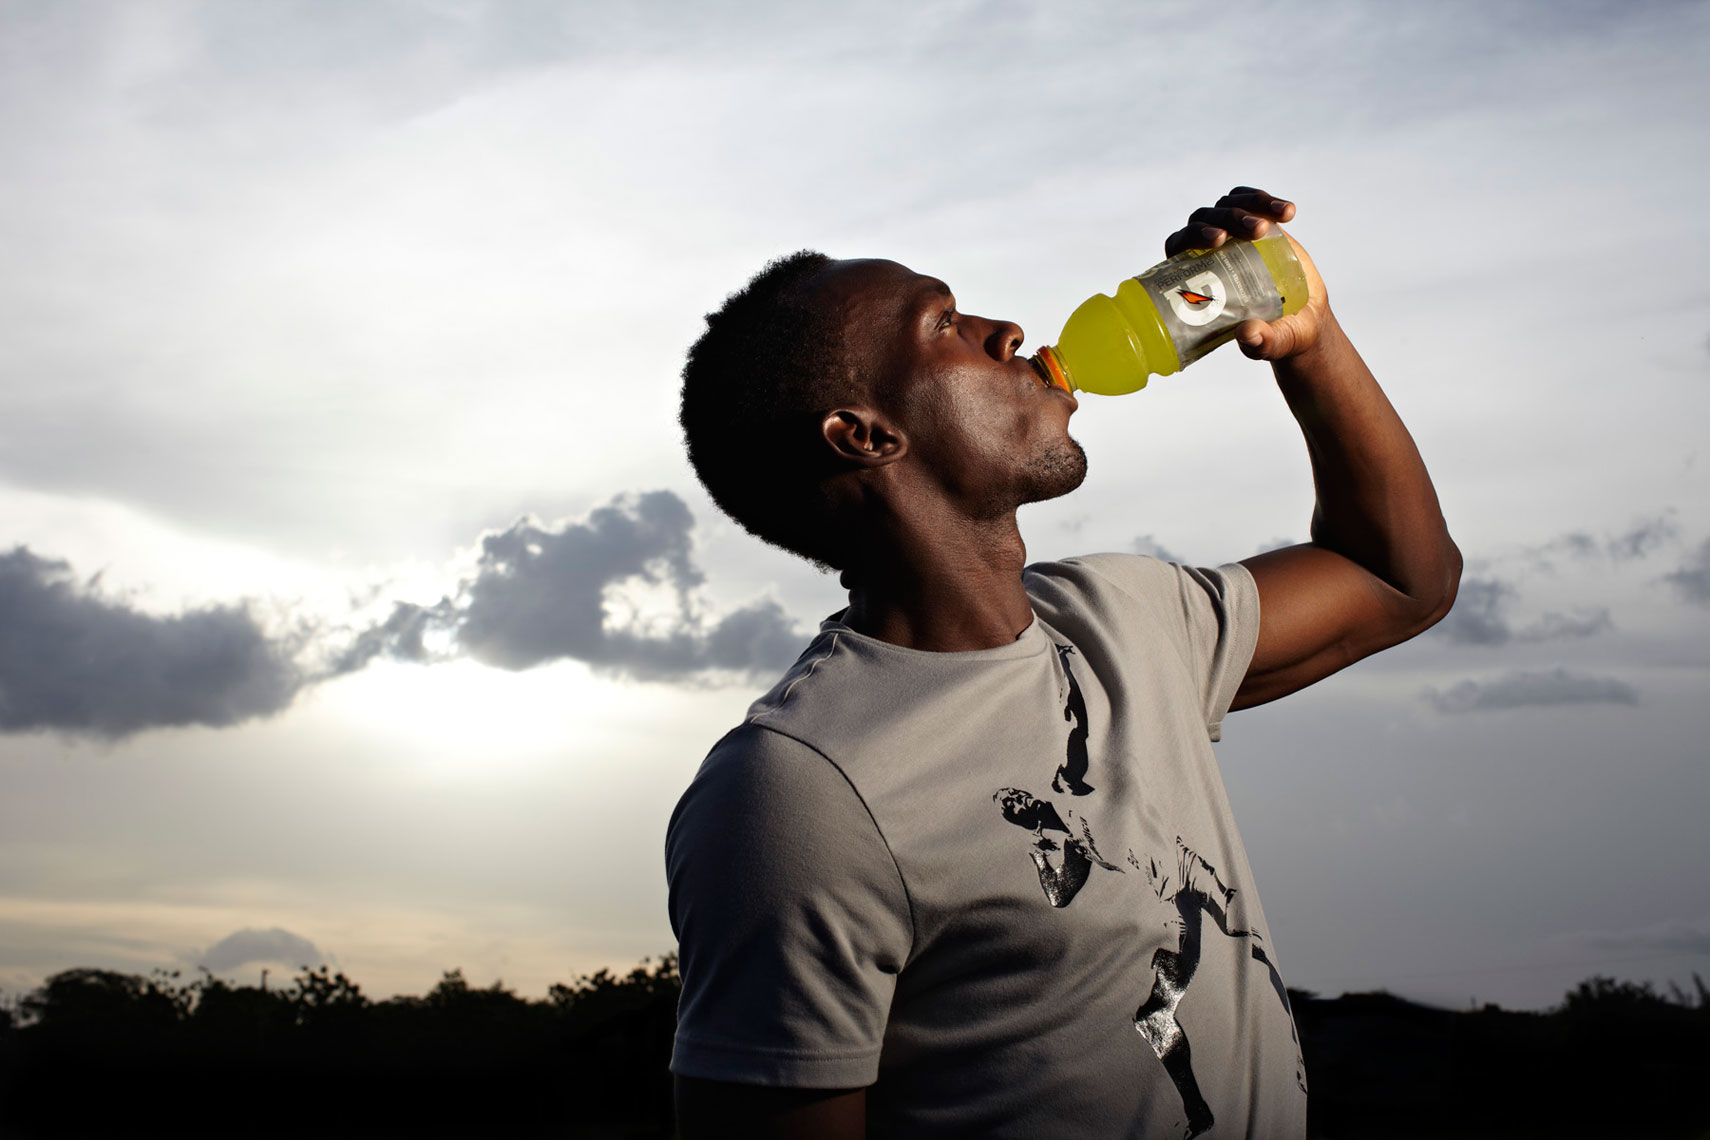 Usain Bolt Drink Gatorade photo by monte isom